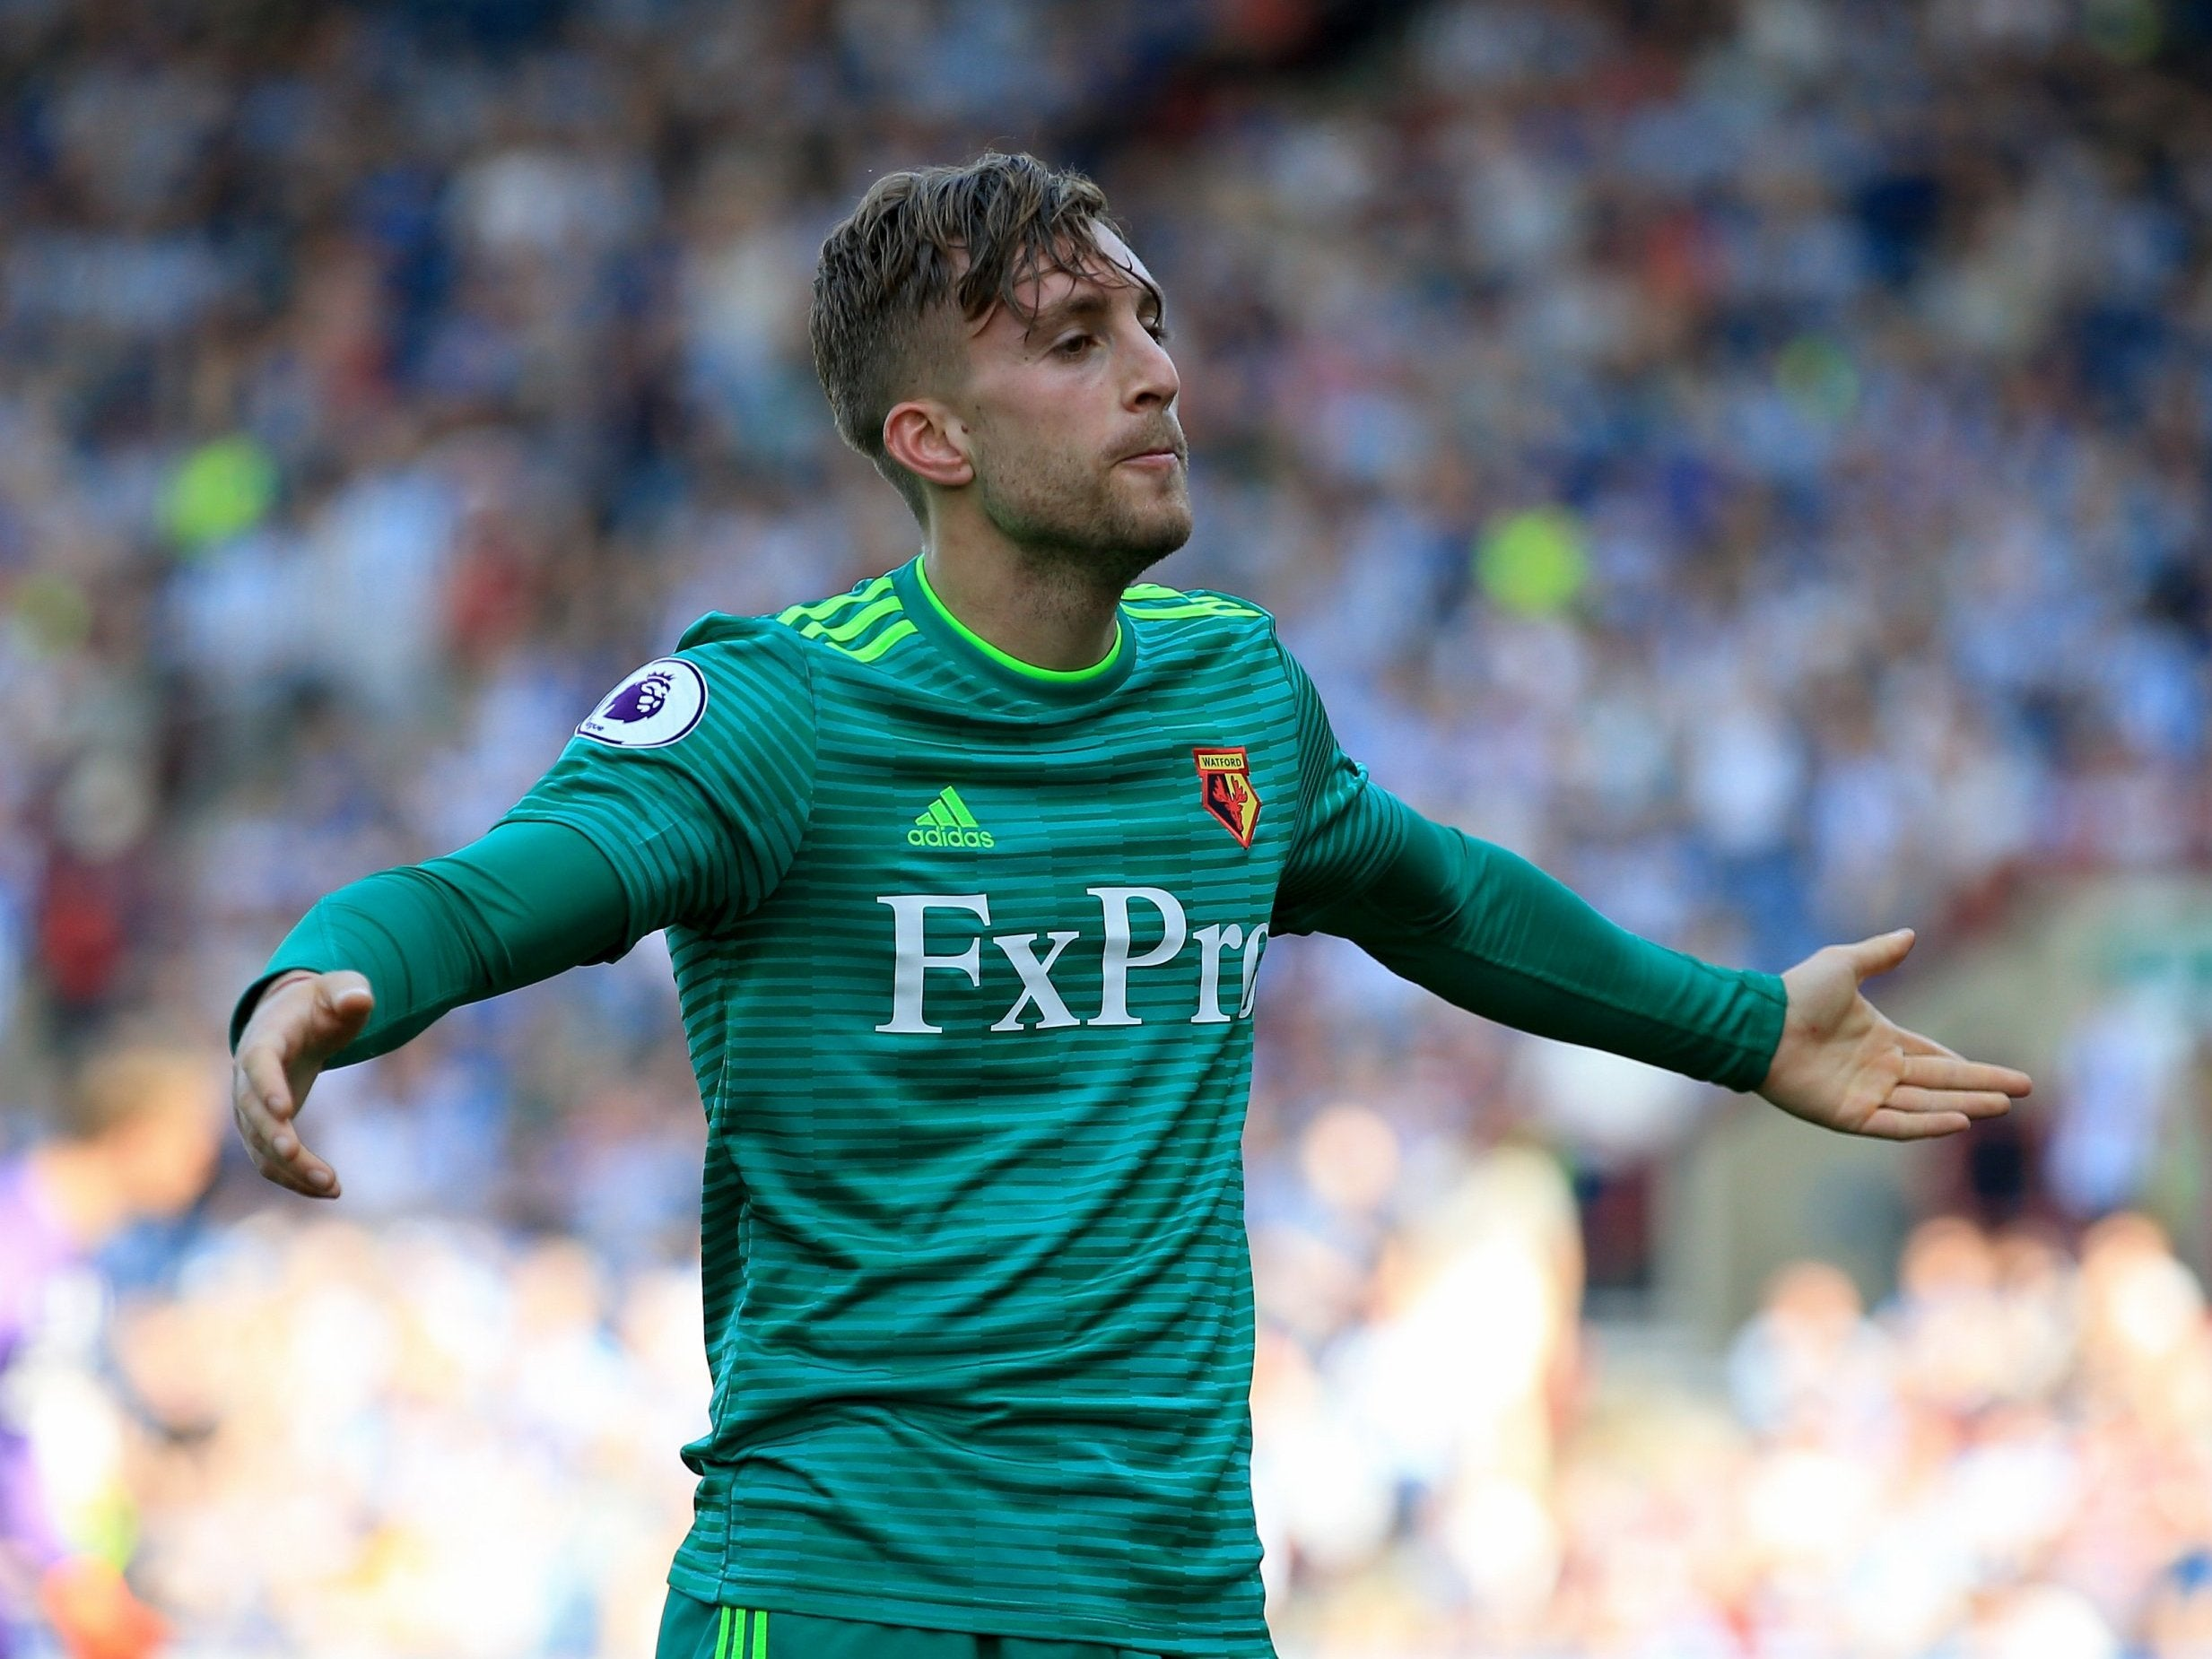 Watford news: Gerard Deulofeu says FA Cup win and seventh place would top anything he achieved at Barcelona